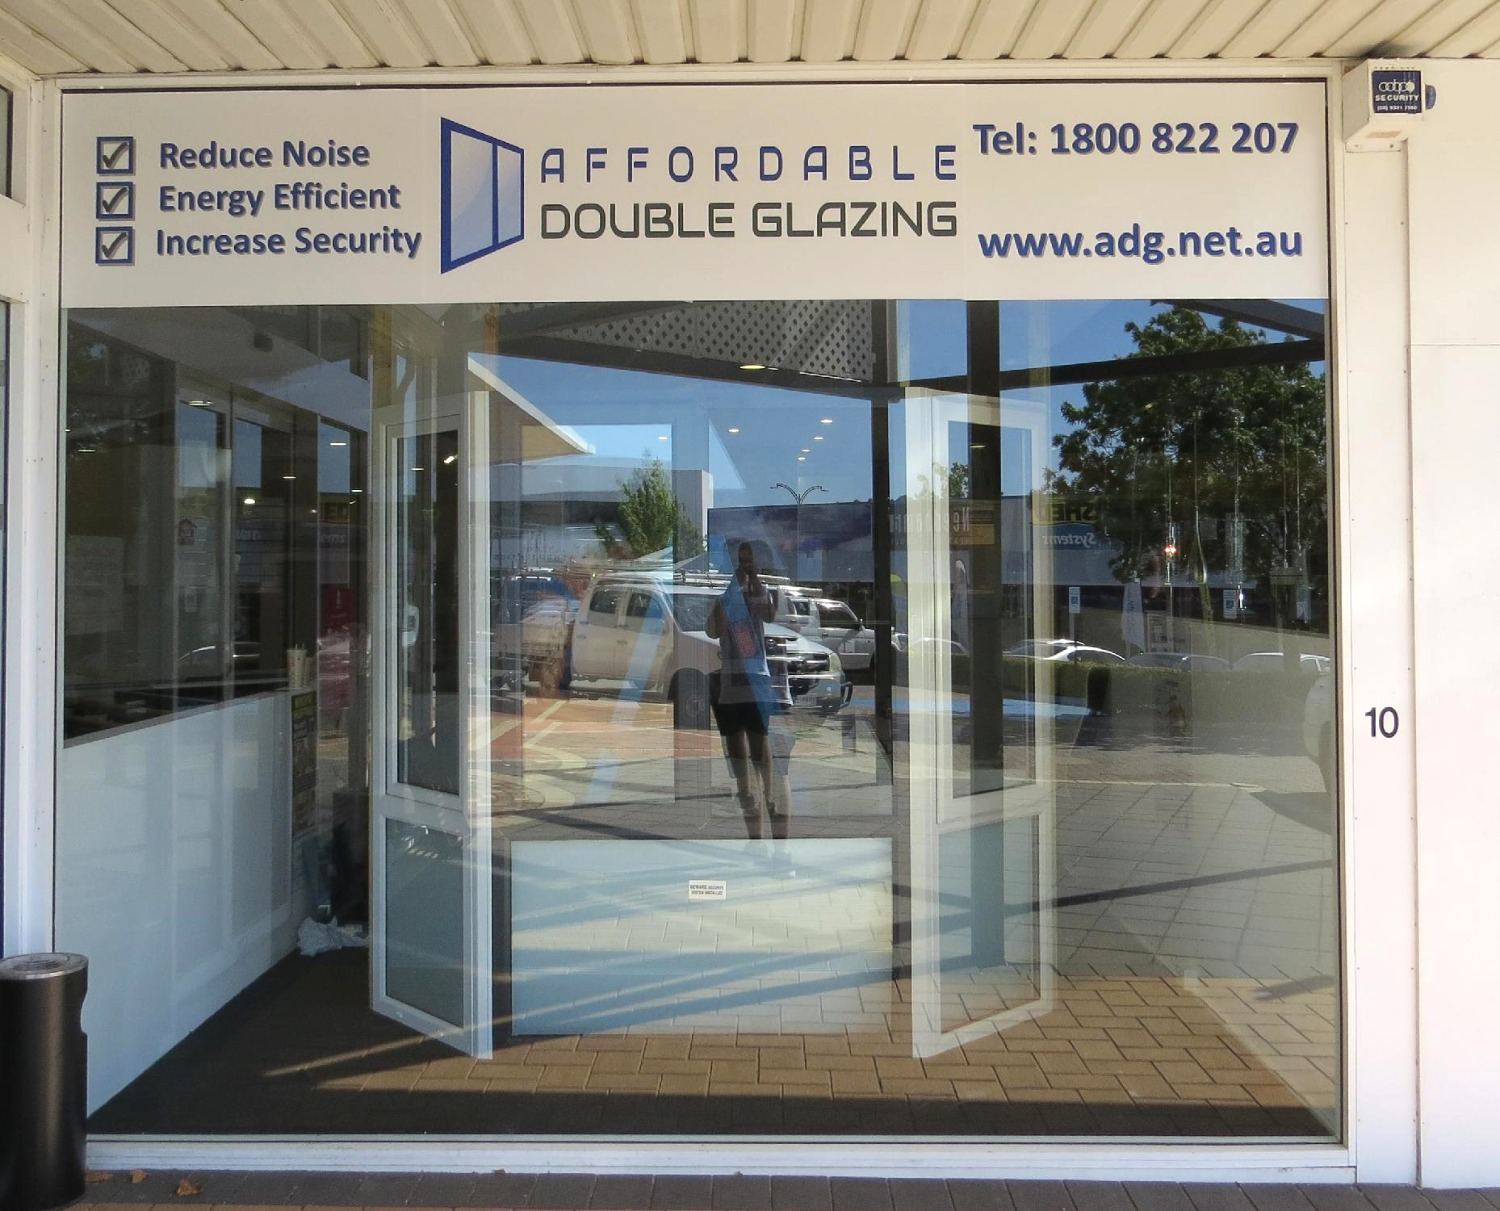 Affordable Double Glazing | Perth Double Glazing on